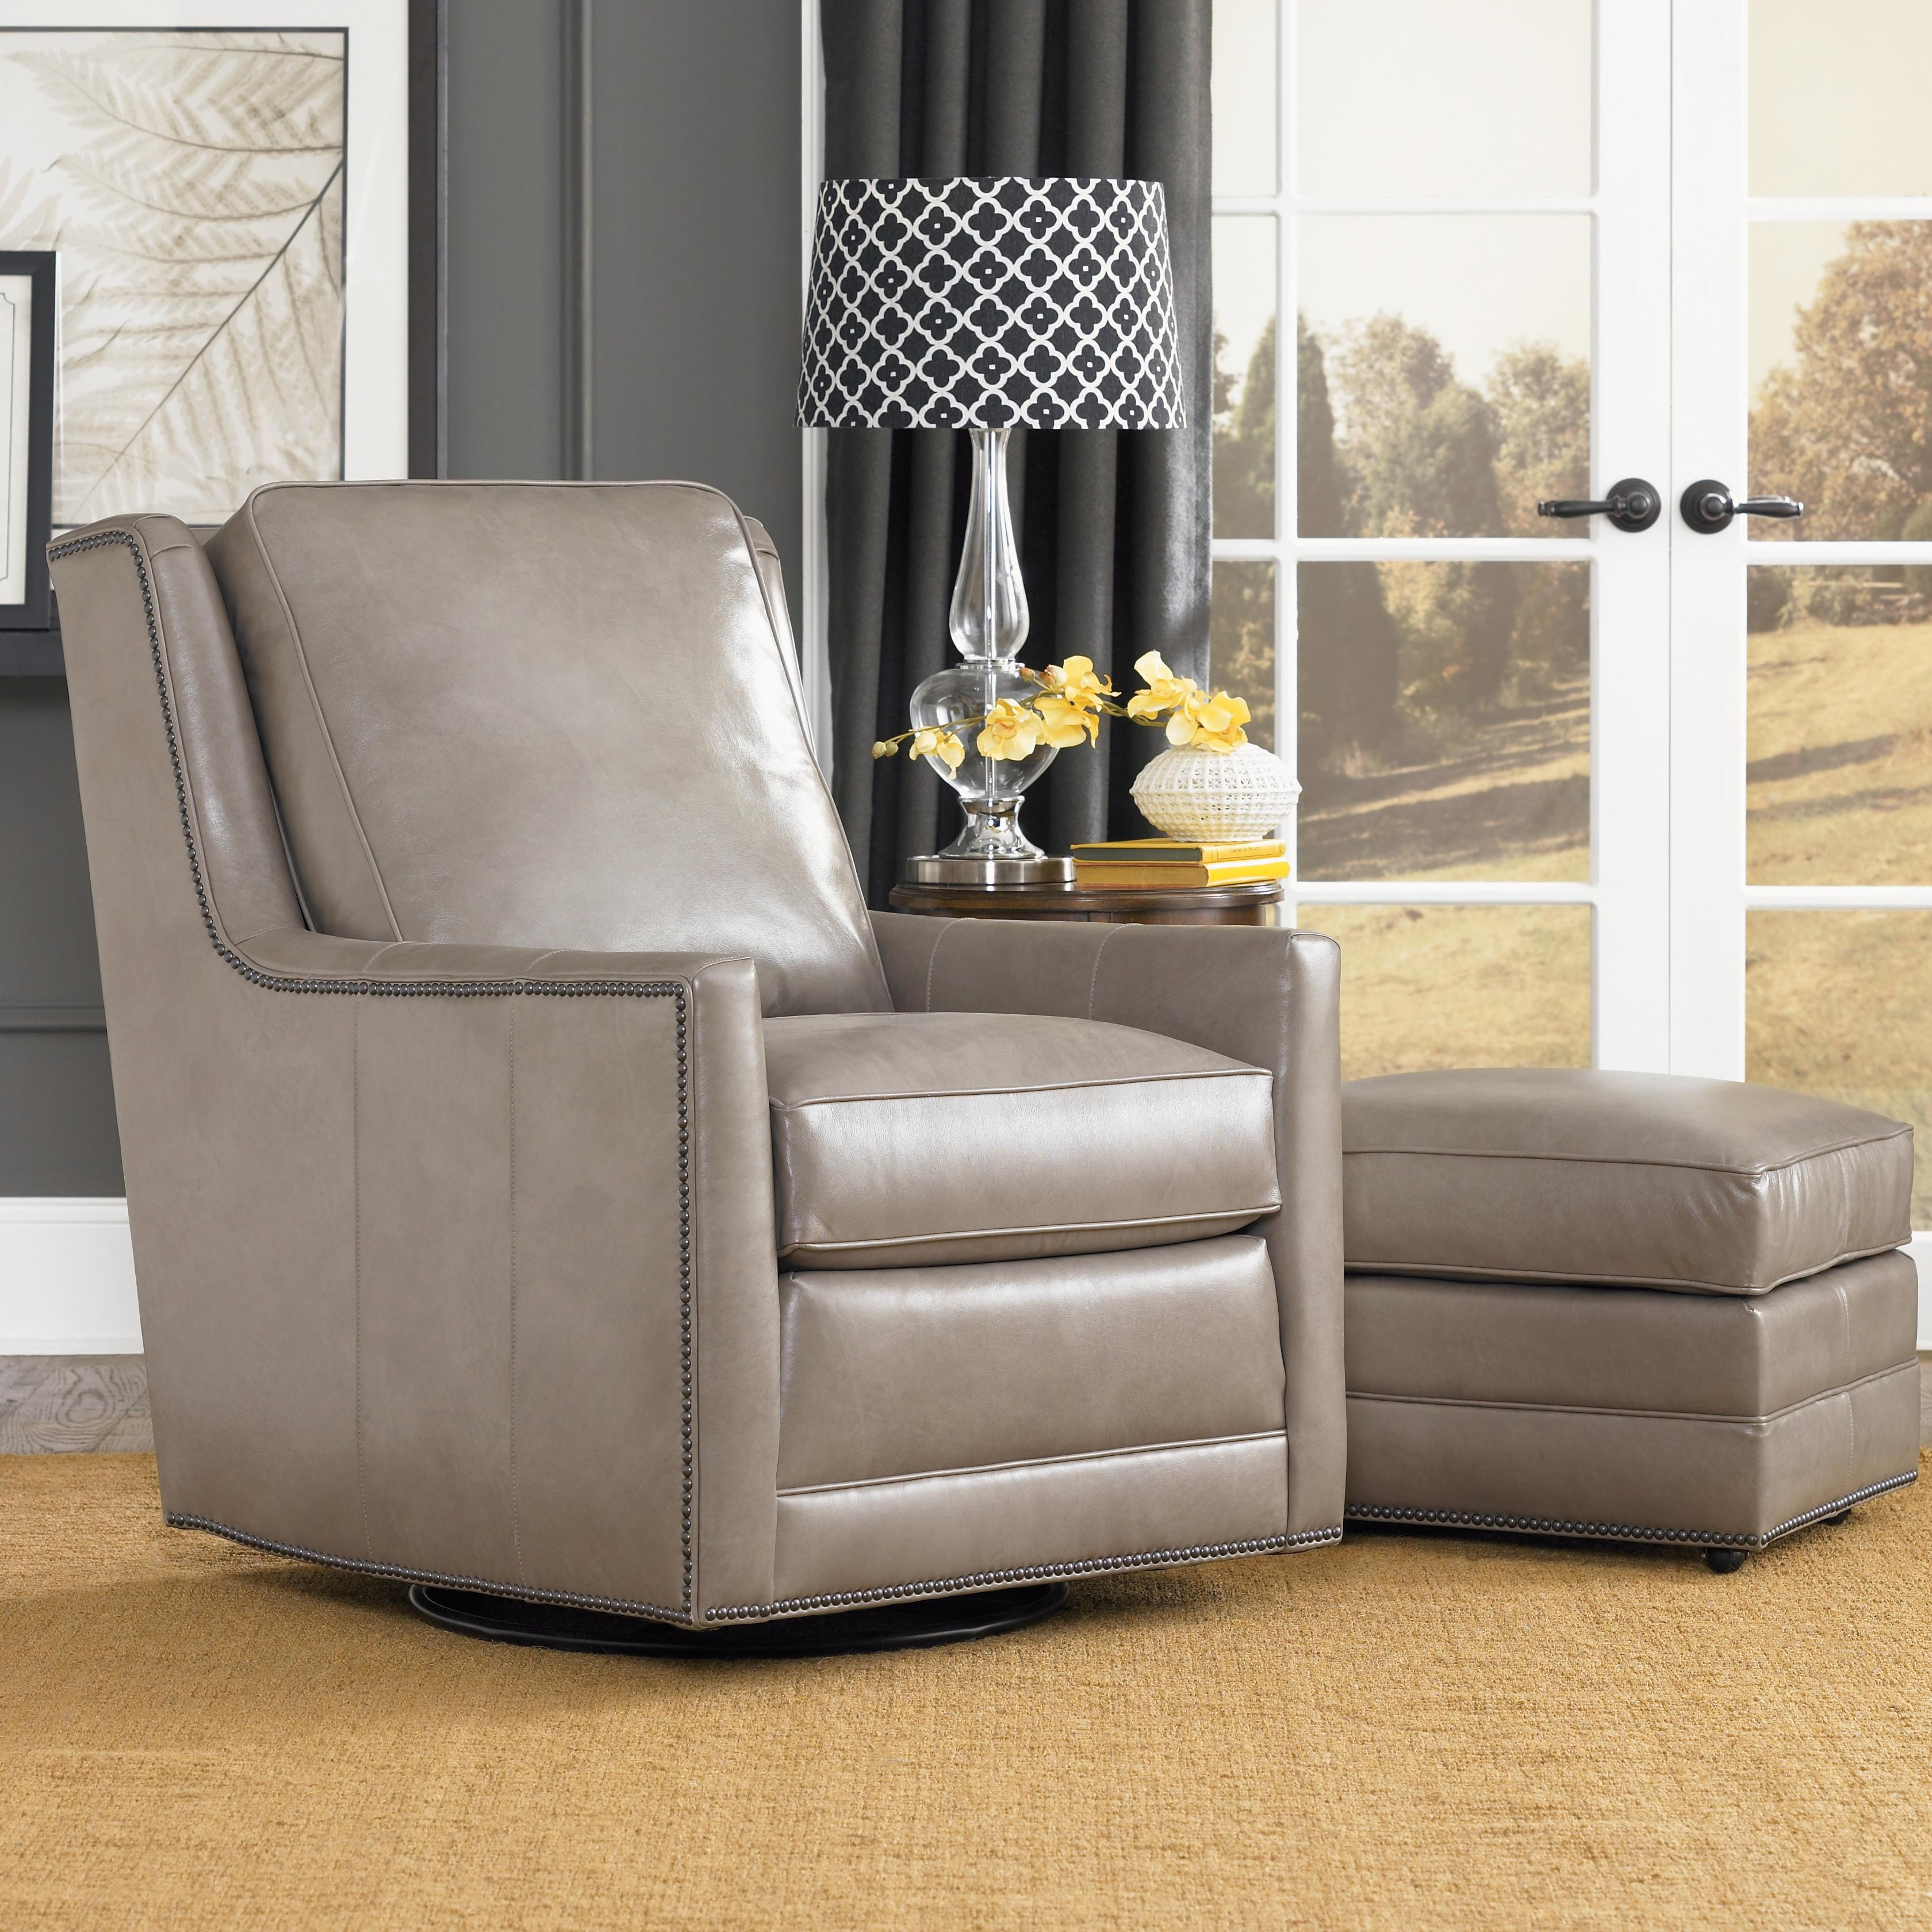 Smith Brothers Accent Chairs And Ottomans Sb Transitional Swivel Chair And Ottoman Set Darvin